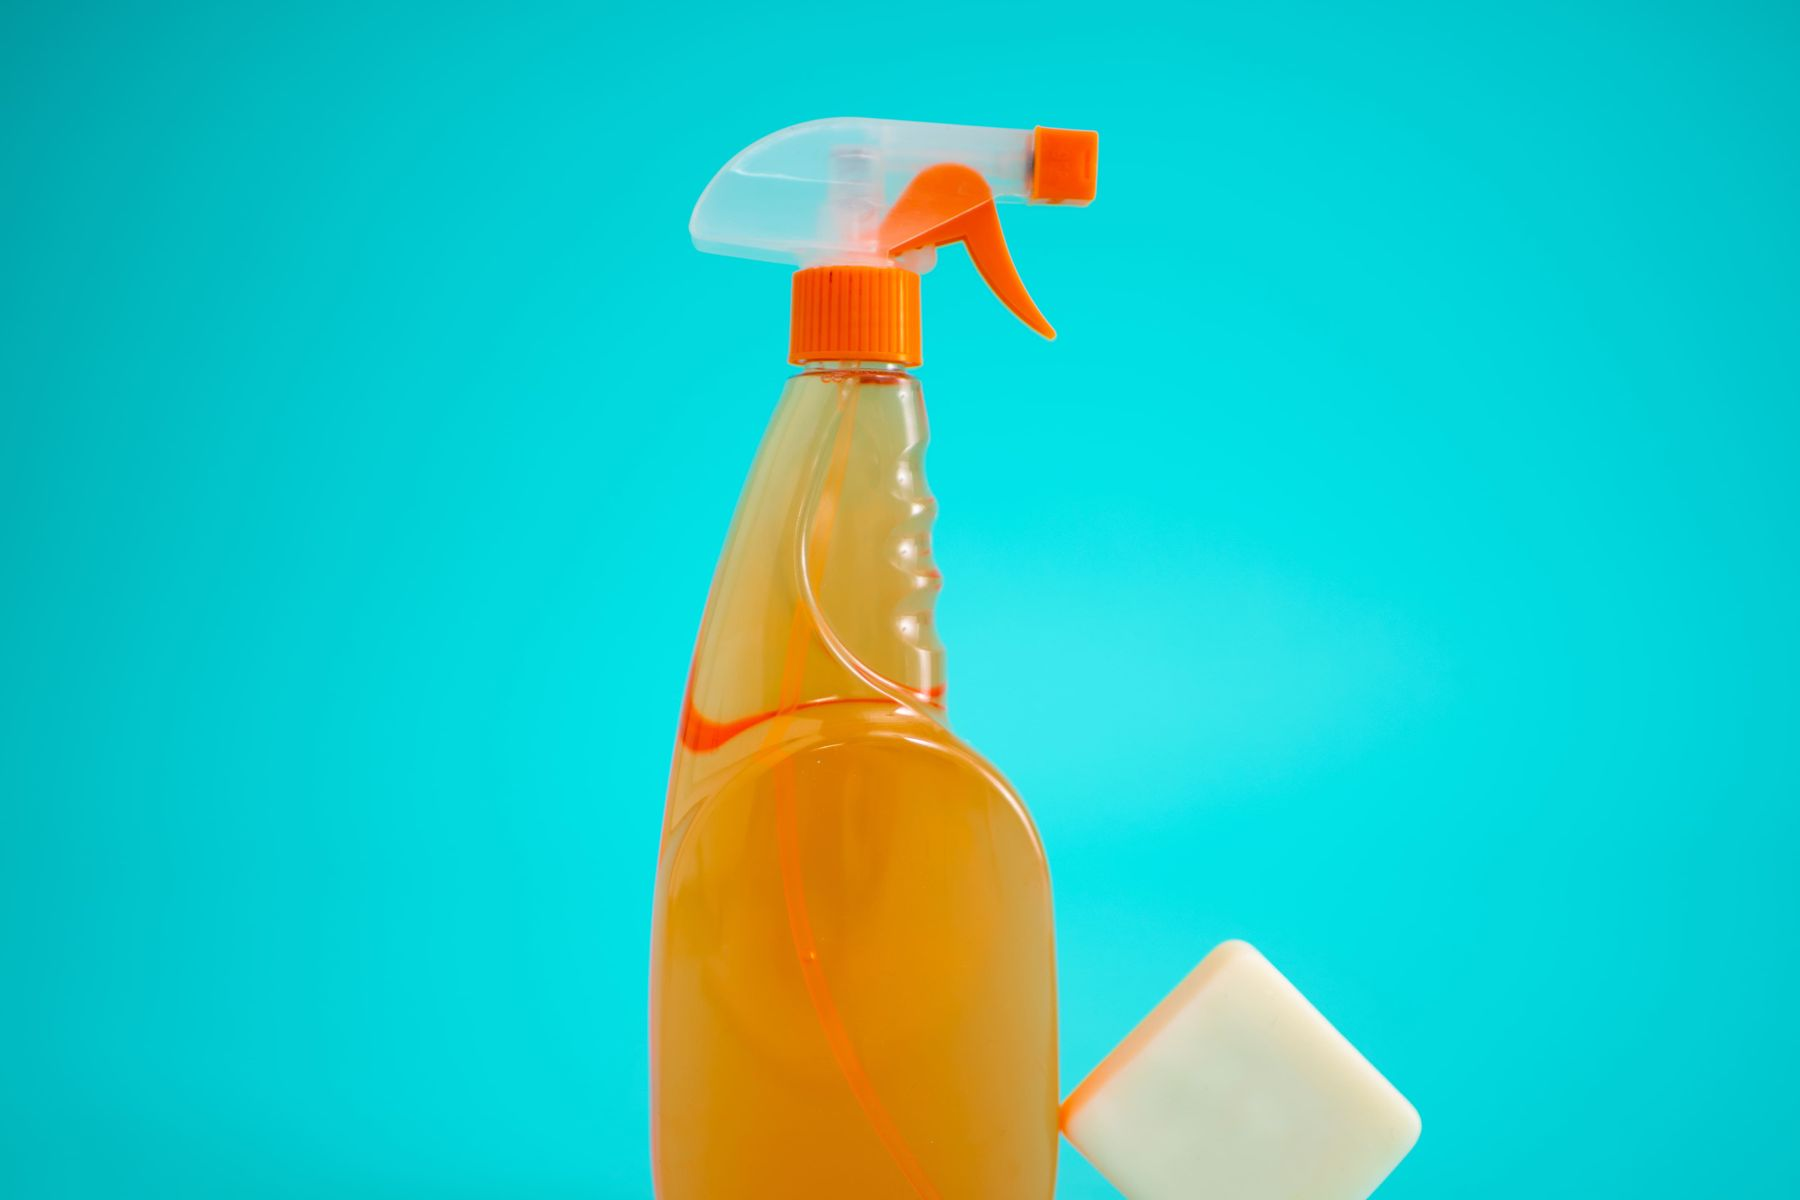 Yellow spray bottle with a product for deep cleaning the house